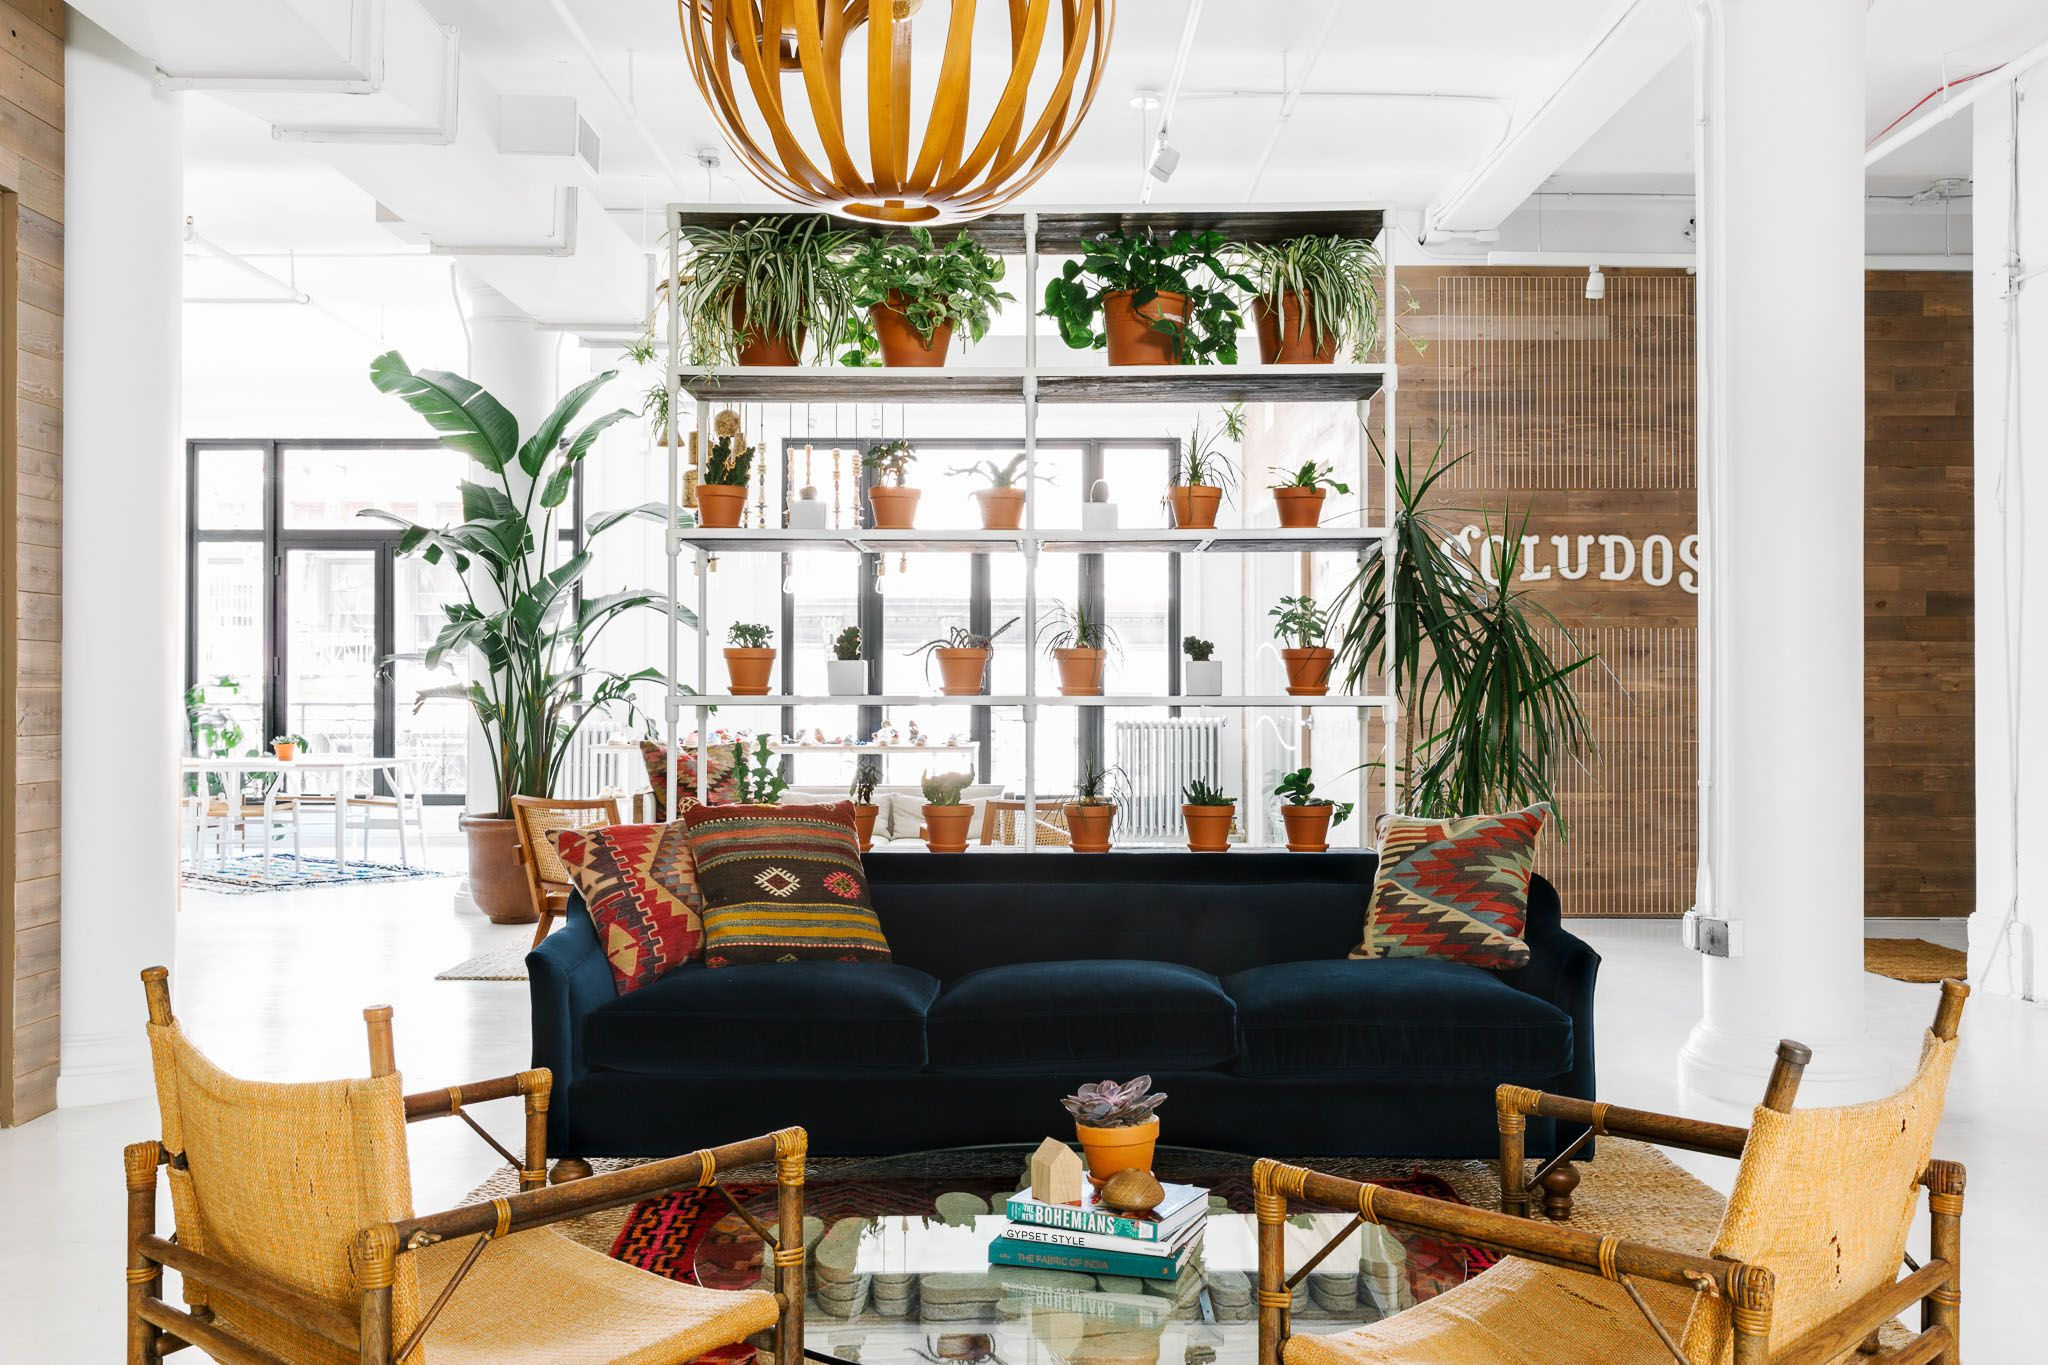 A Vibrant and Stylish HQ for Soludos